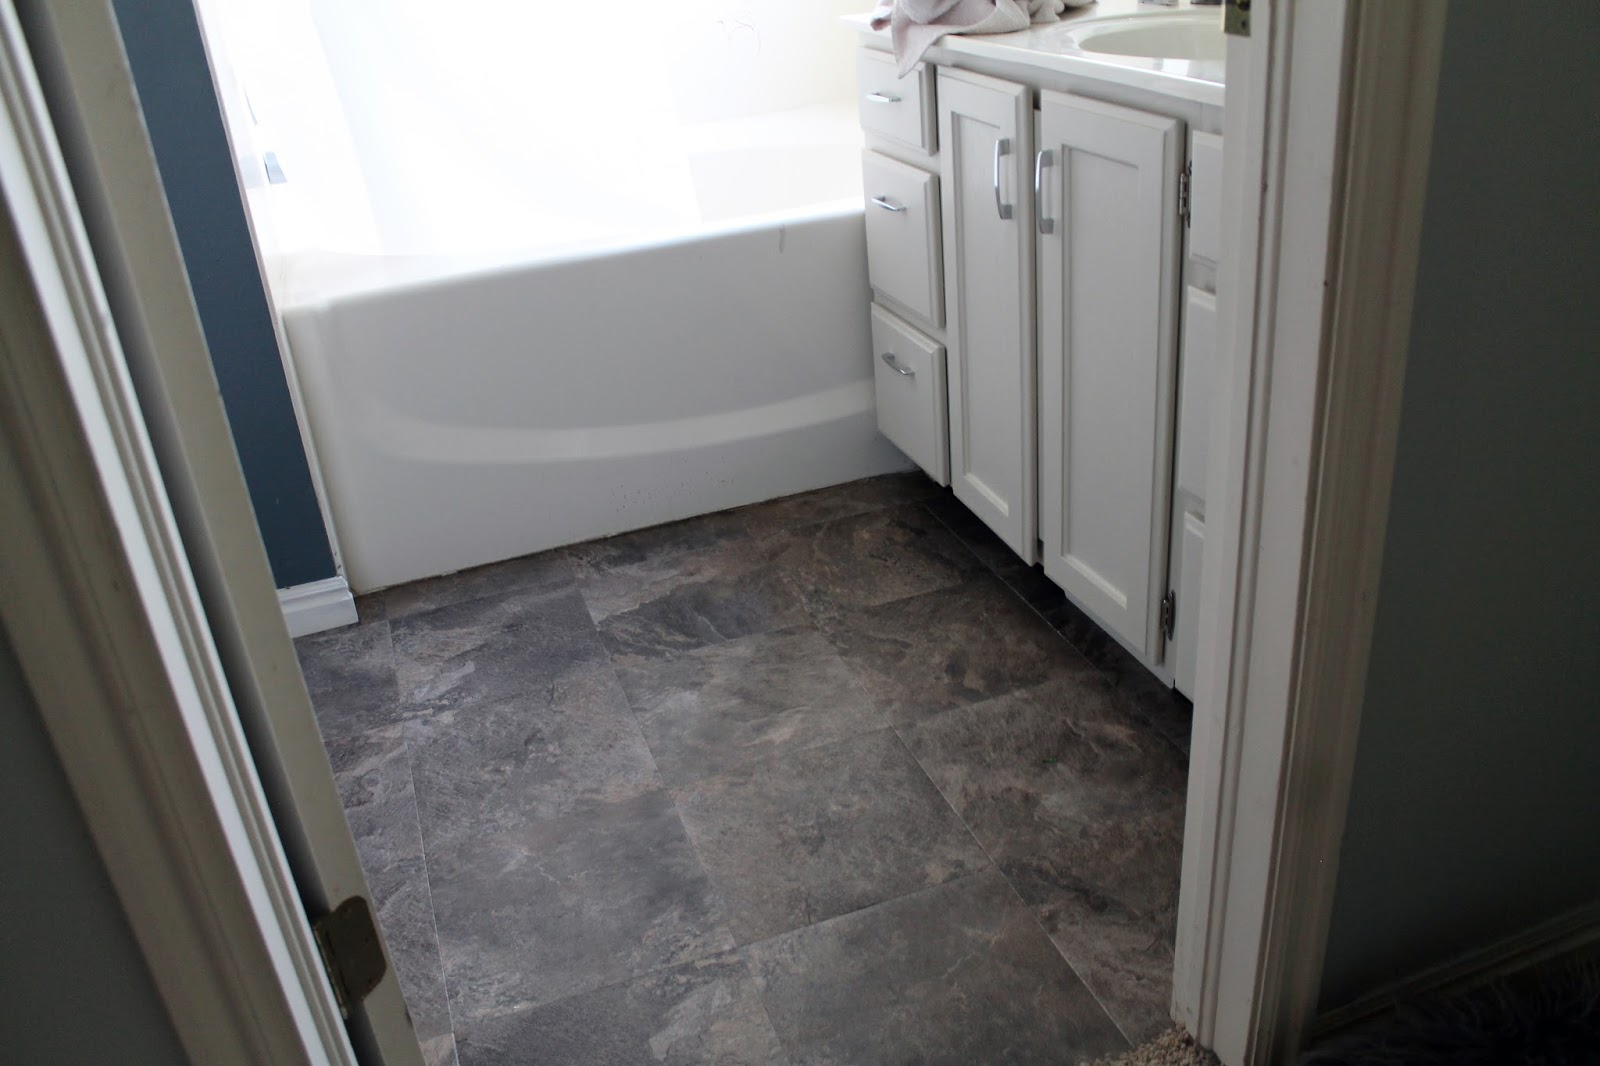 Inspirational Peel And Stick Bathroom Floors - Chris Loves Julia regarding Best of Flooring For Bathrooms